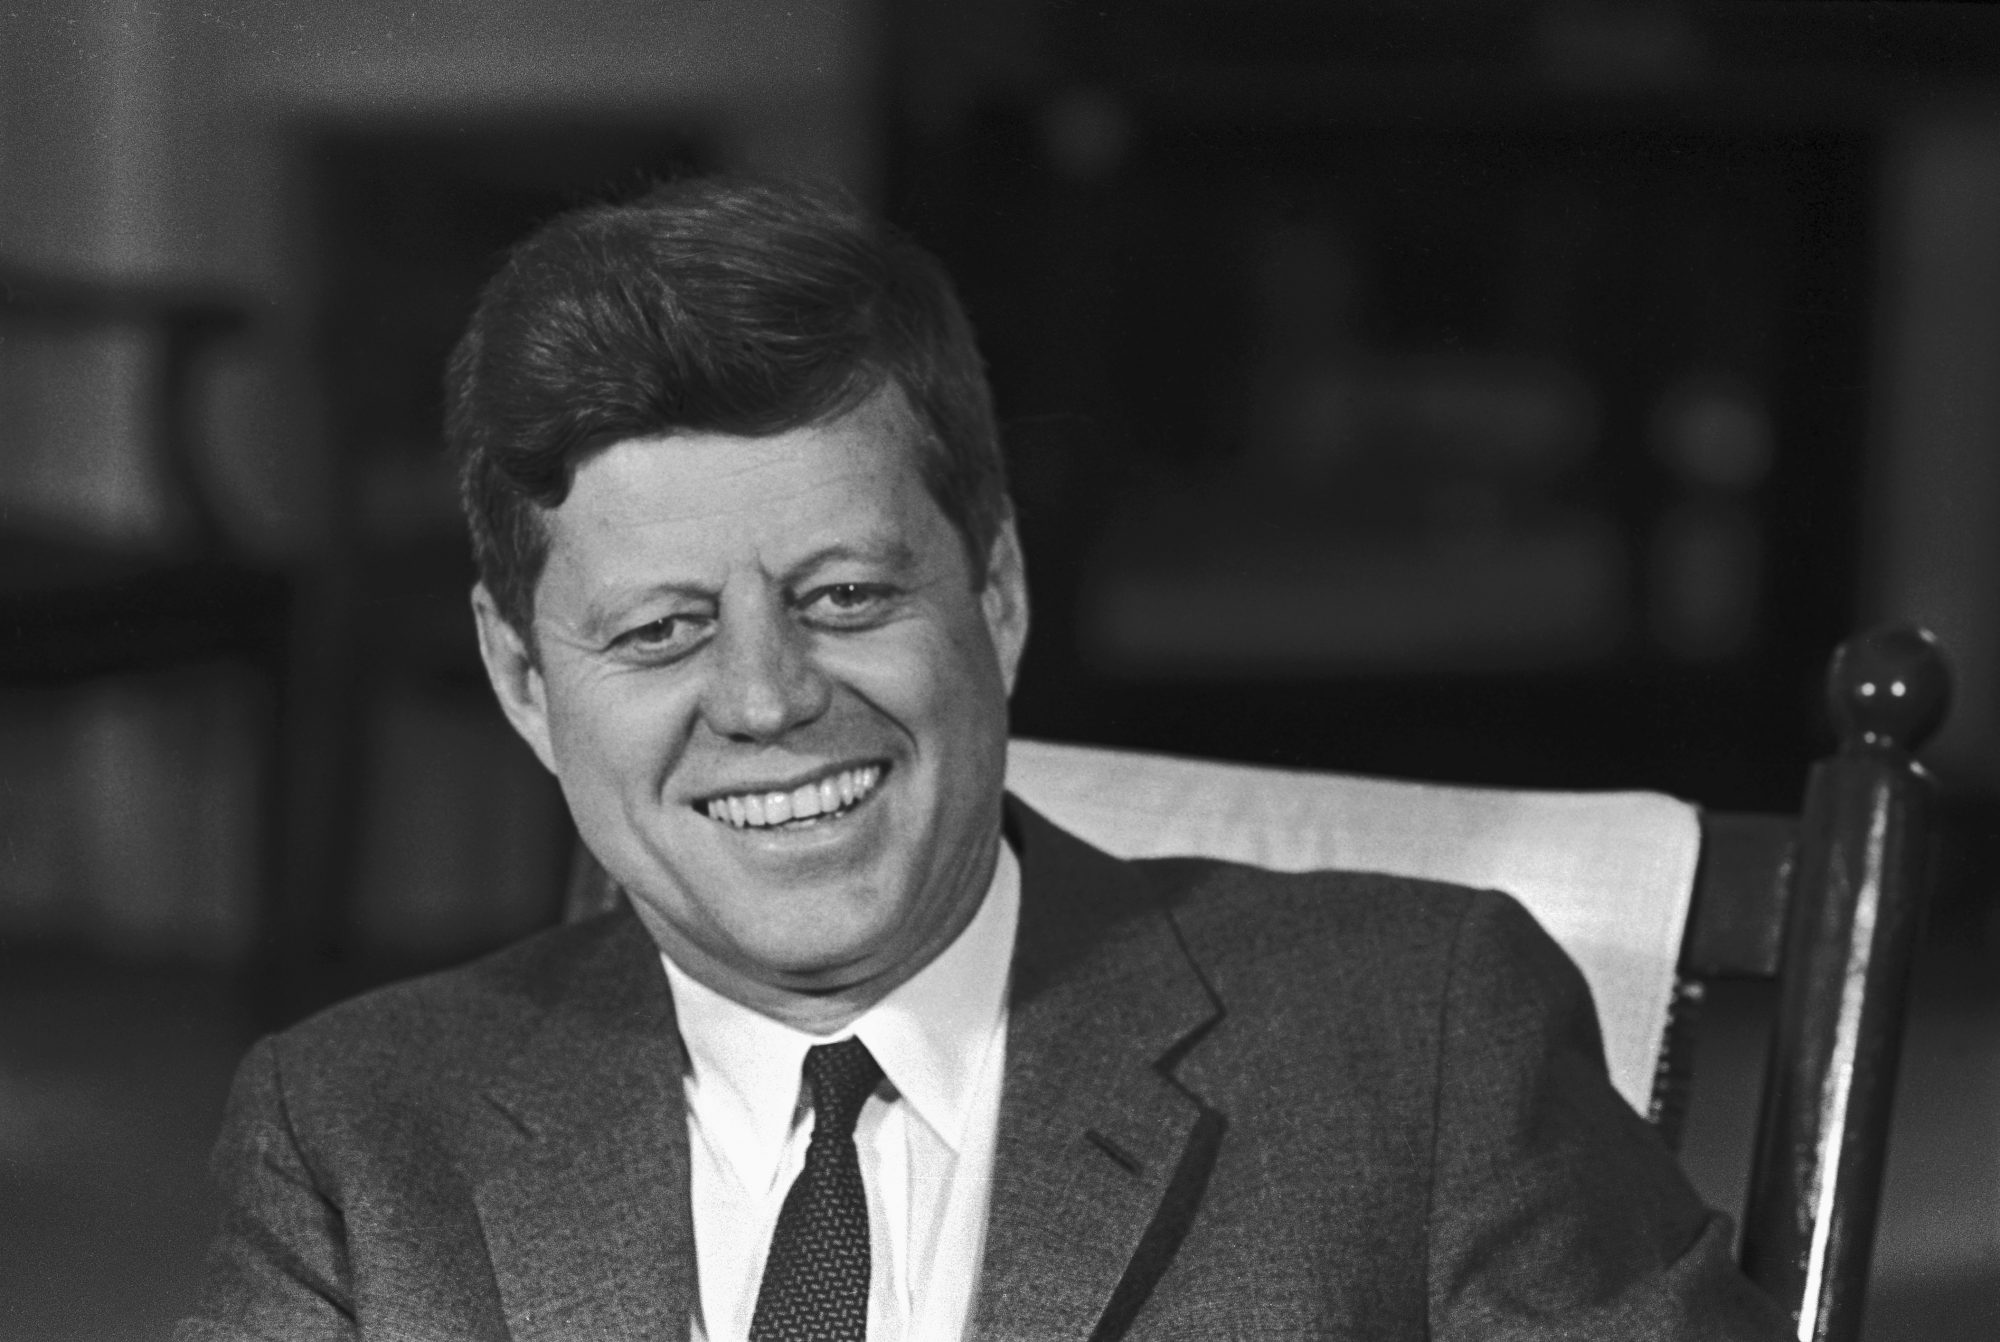 John F. Kennedy Headshot